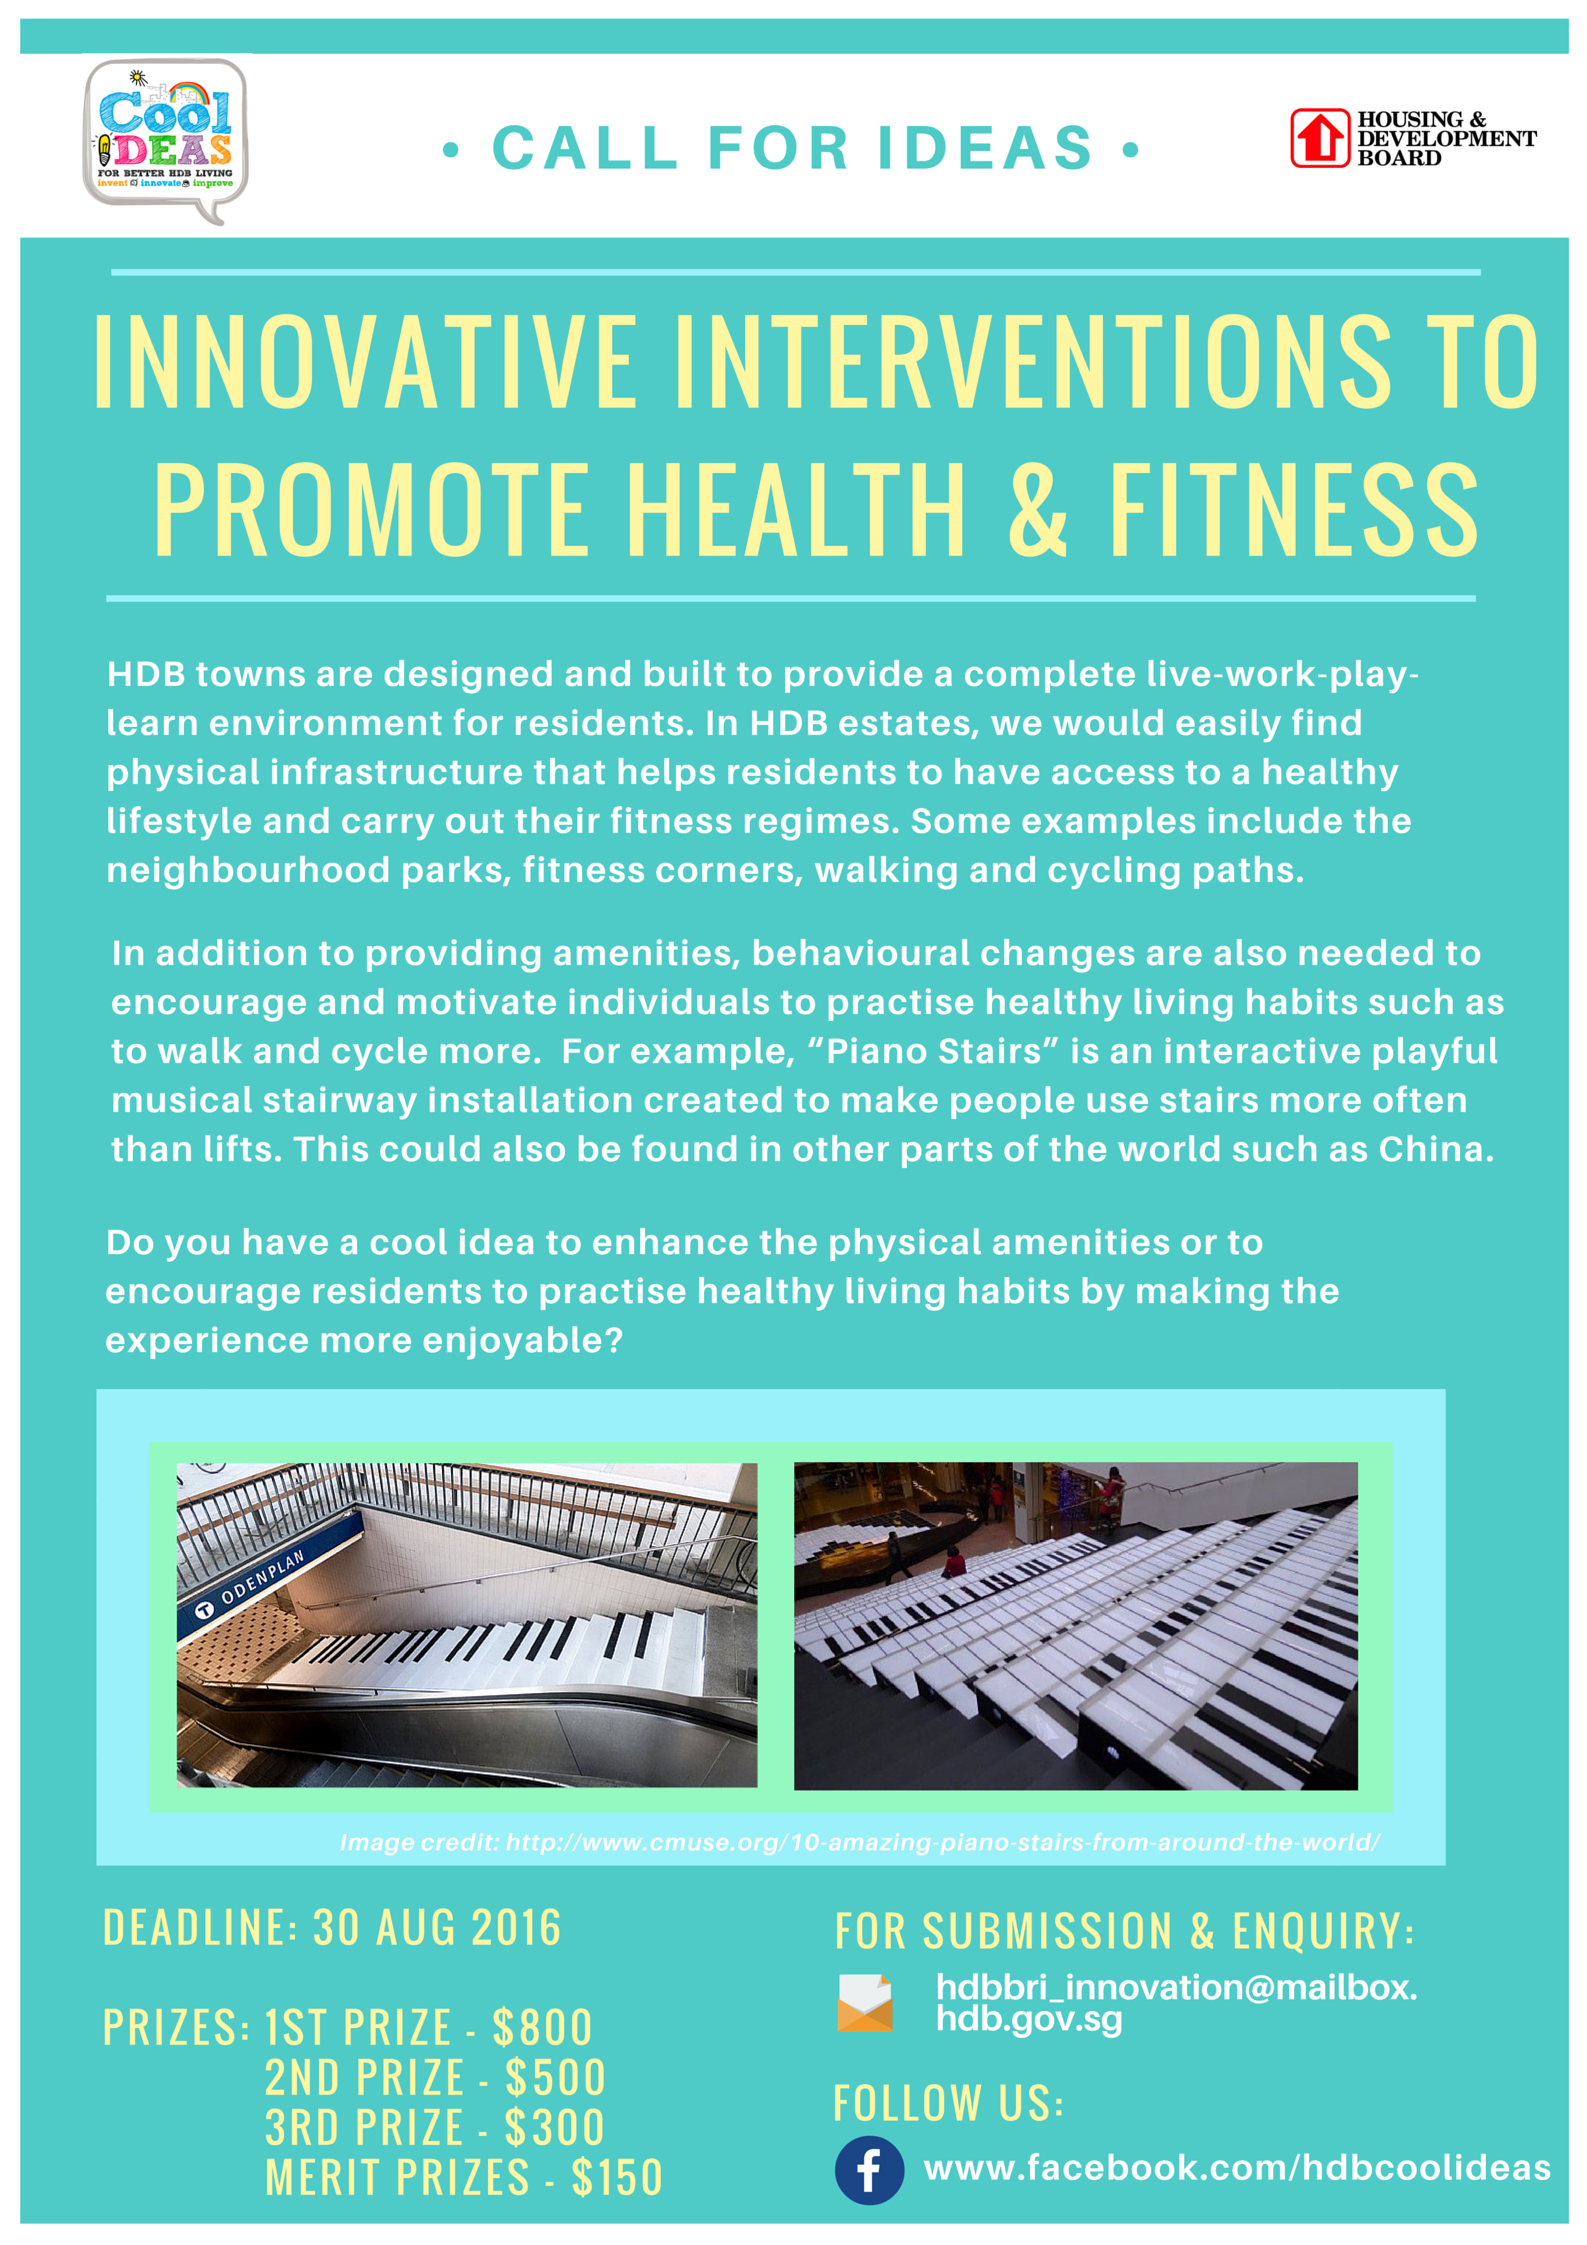 Calling for Ideas on Interventions to Promote Health & Fitness